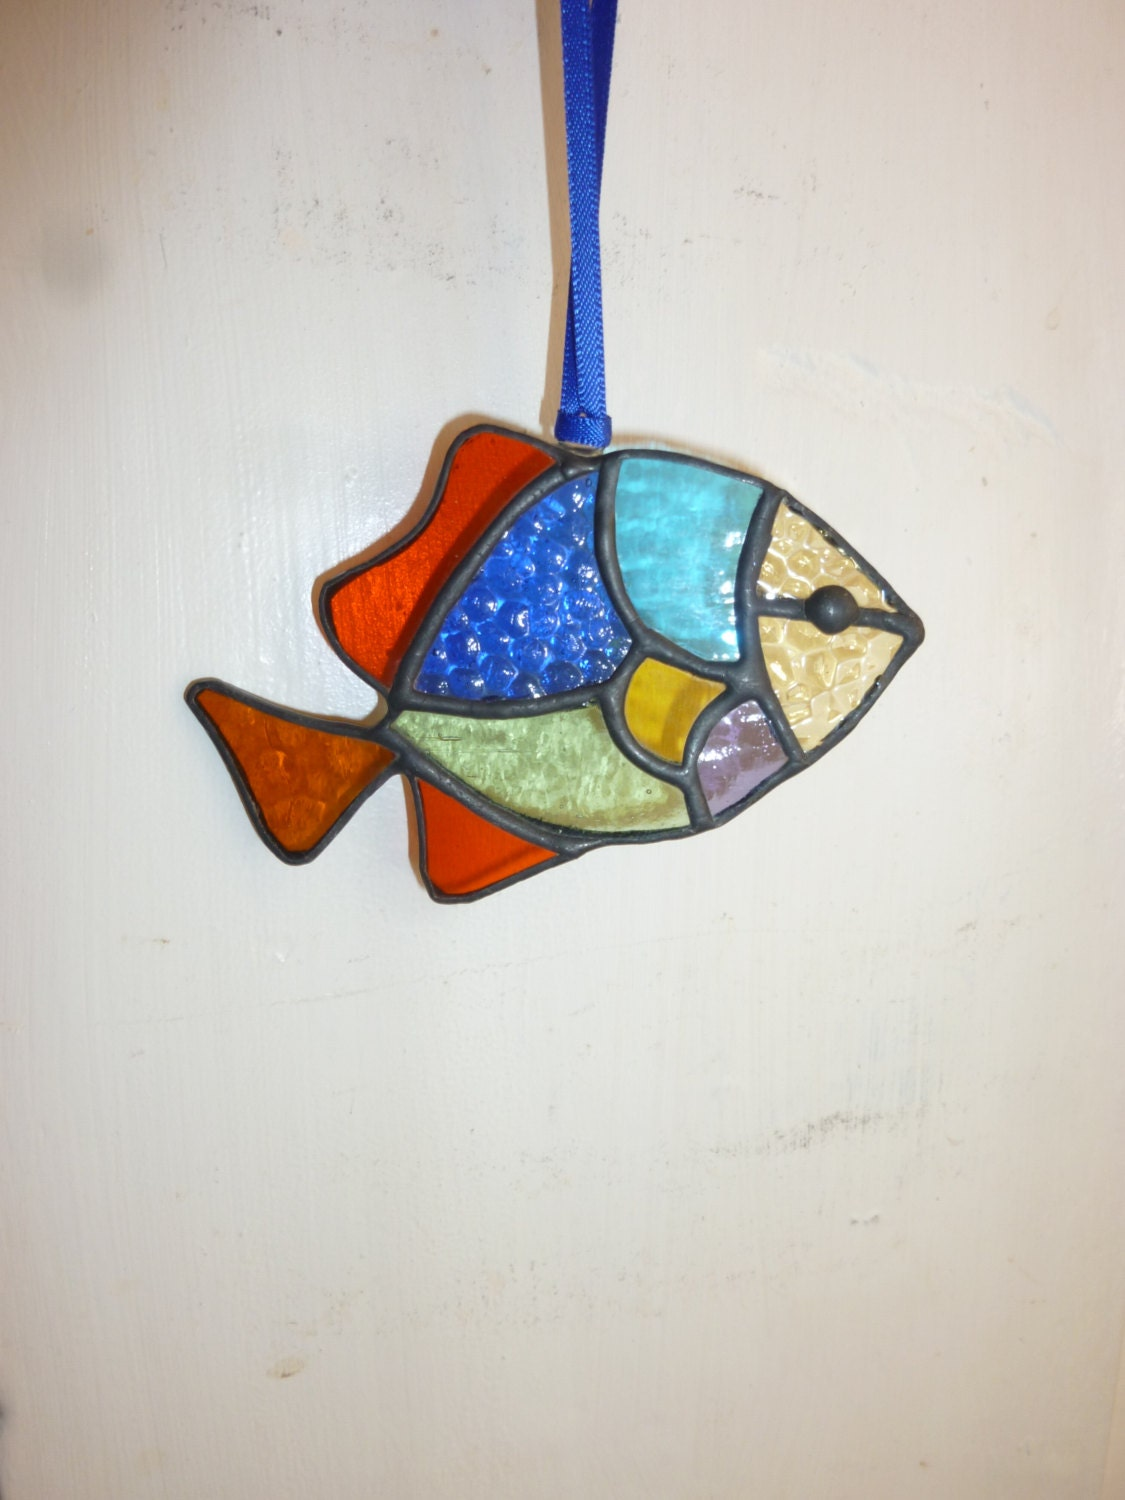 Stained glass fish suncatcher by HiromisGlass on Etsy - photo#11